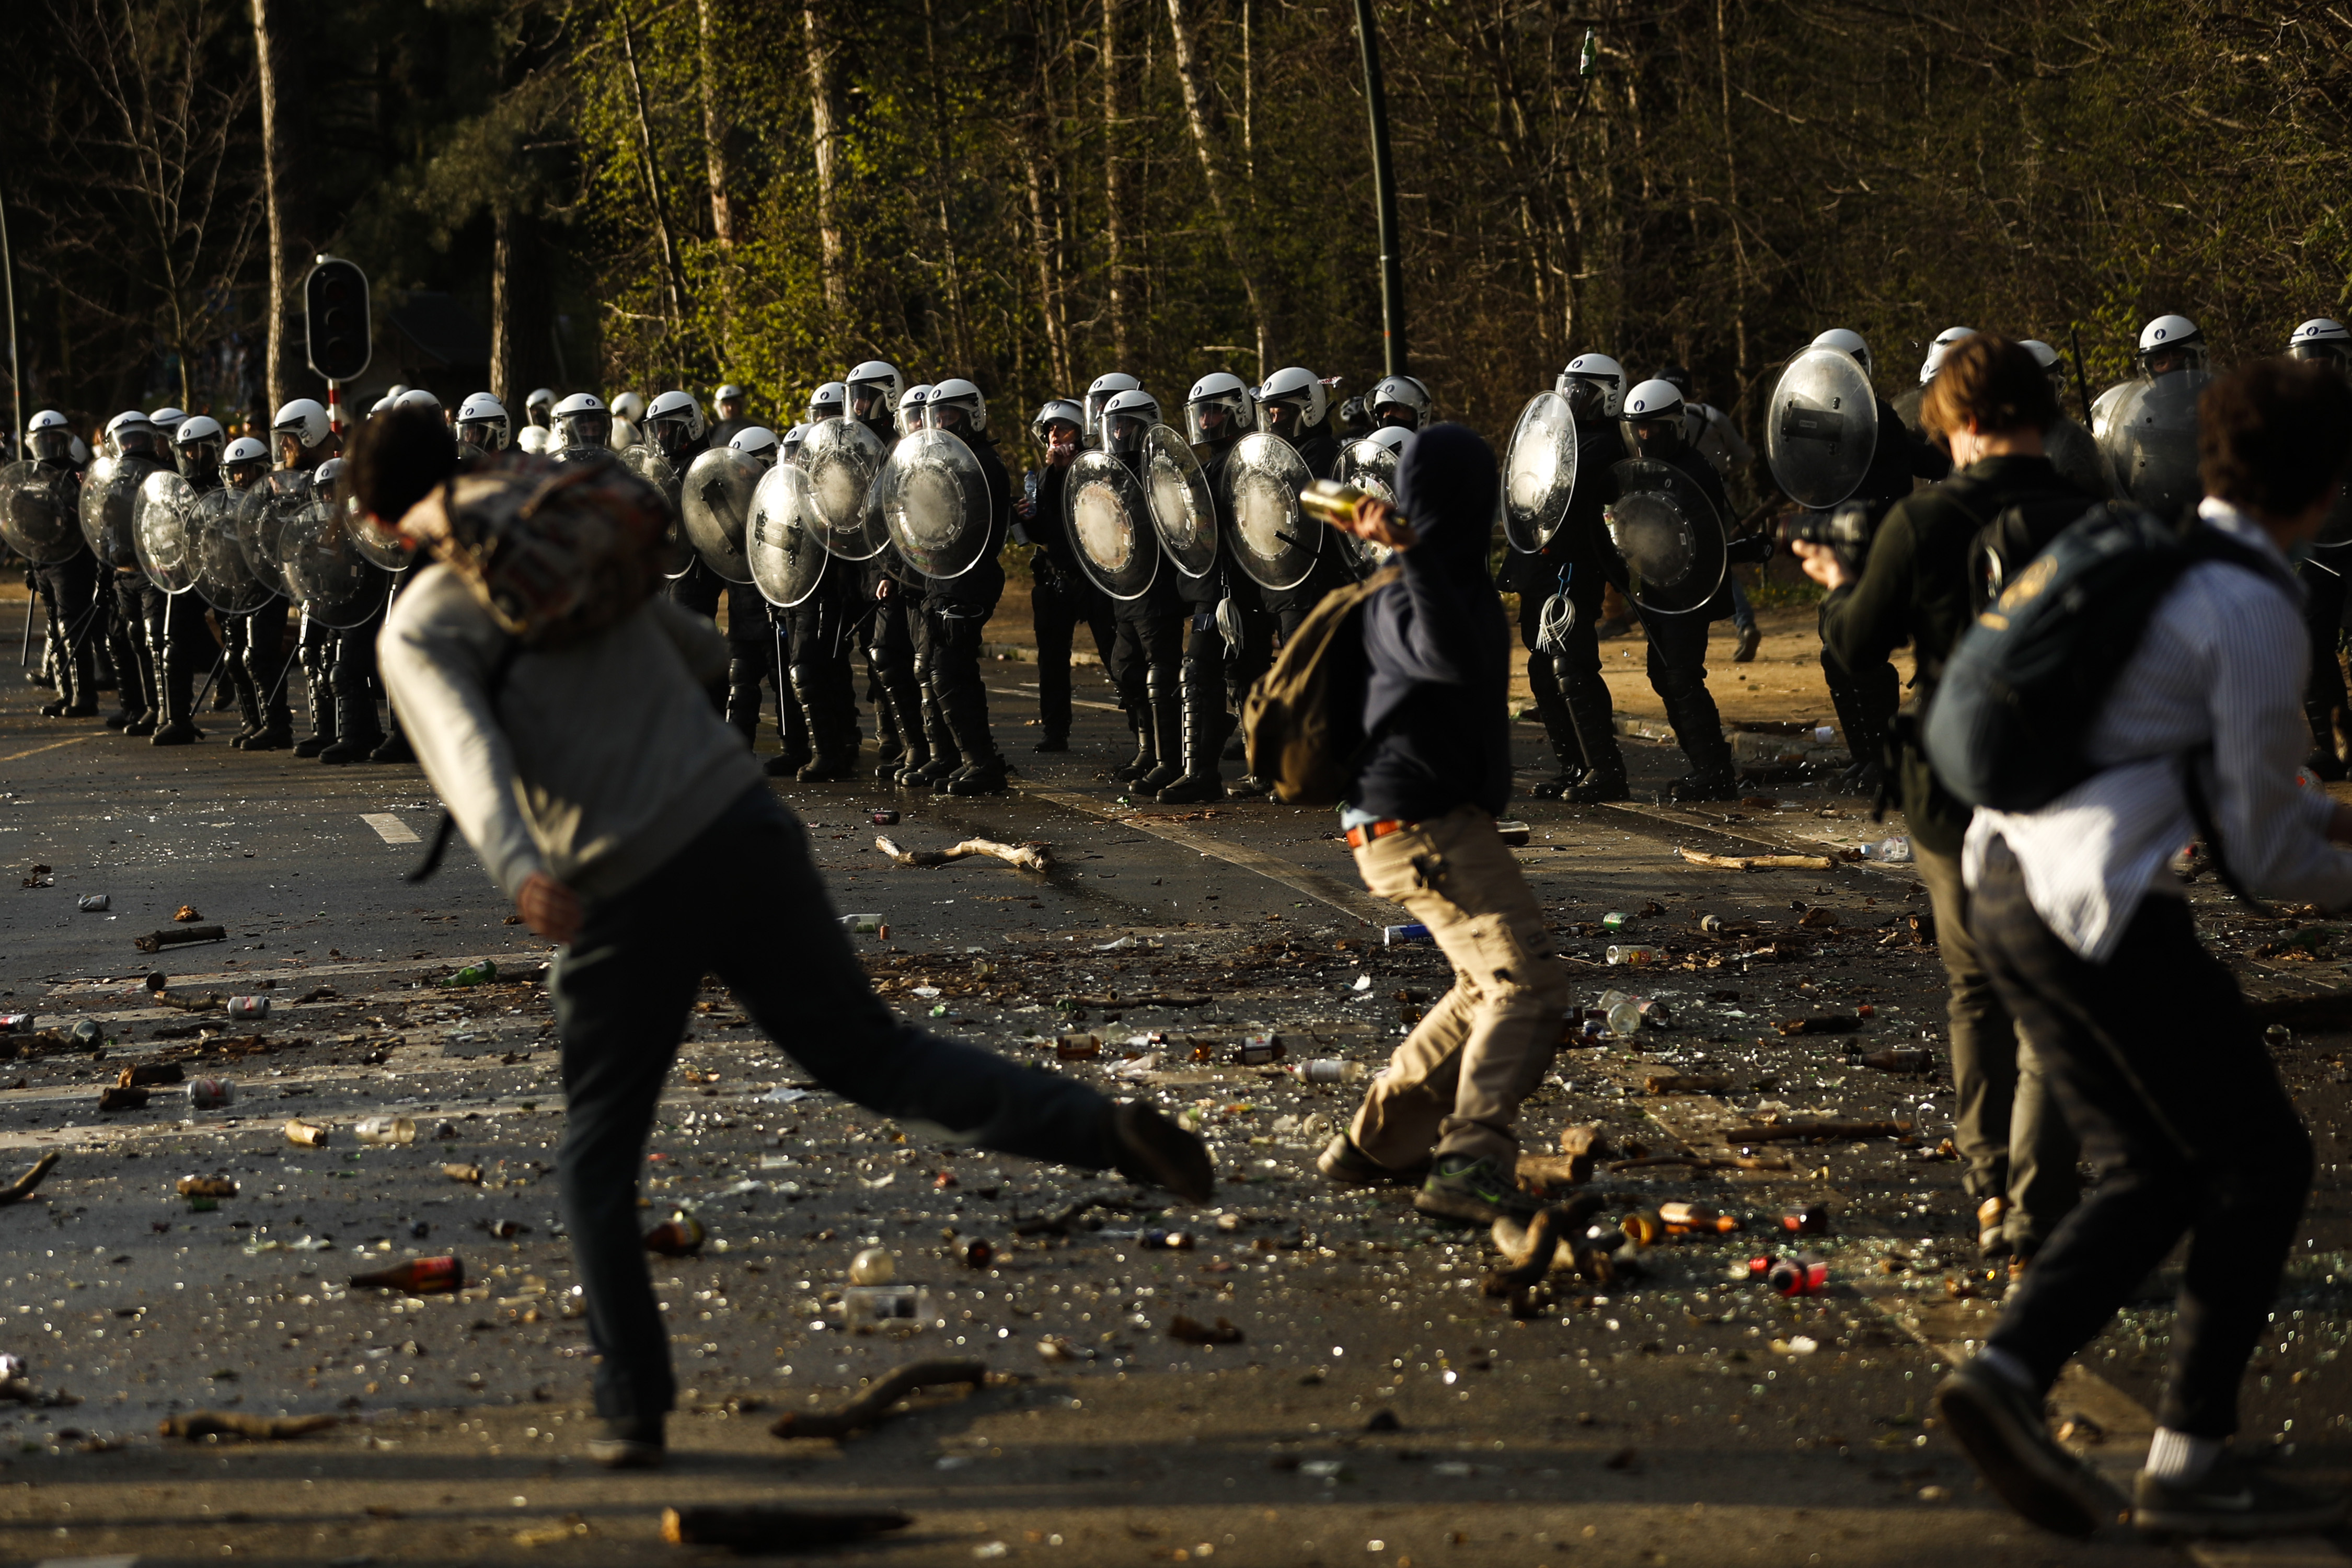 People throw objects towards police in Bois de la Cambre park in Brussels, as clashes broke out following an  unauthorized event in violation of coronavirus restrictions, on April 1.